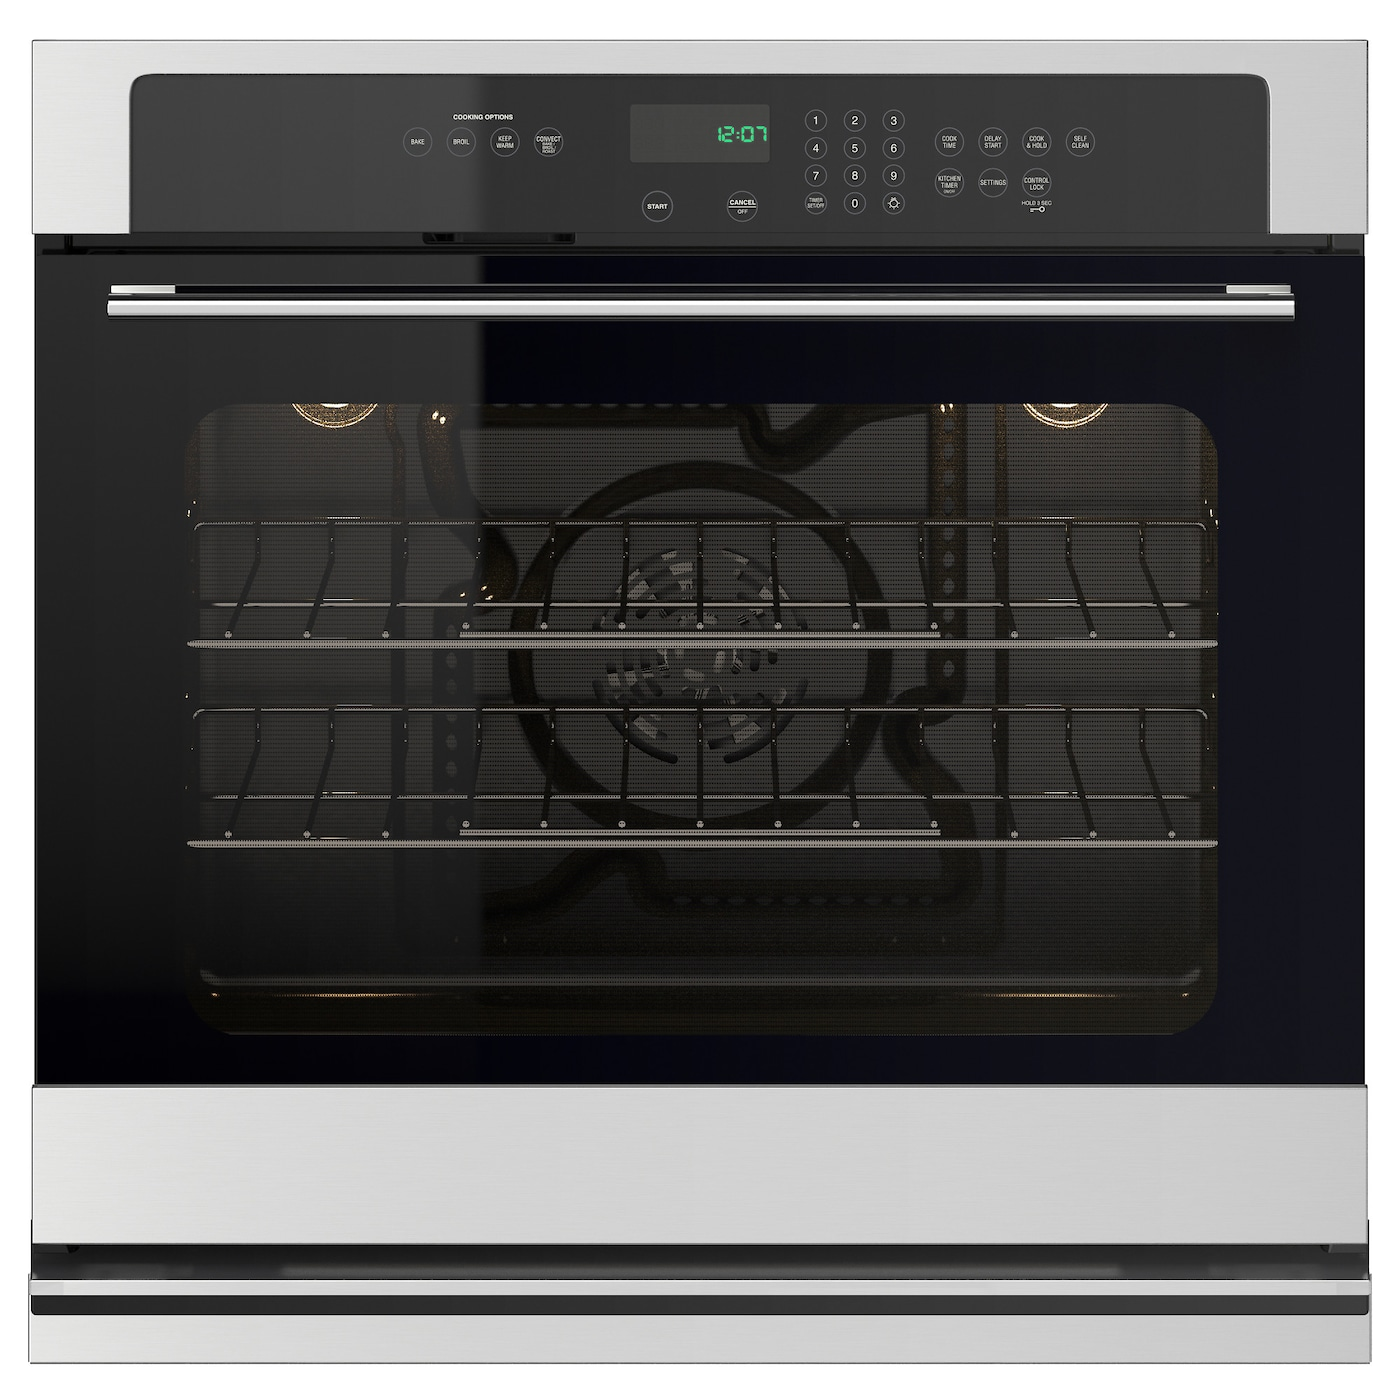 Nutid Self Cleaning Convection Oven